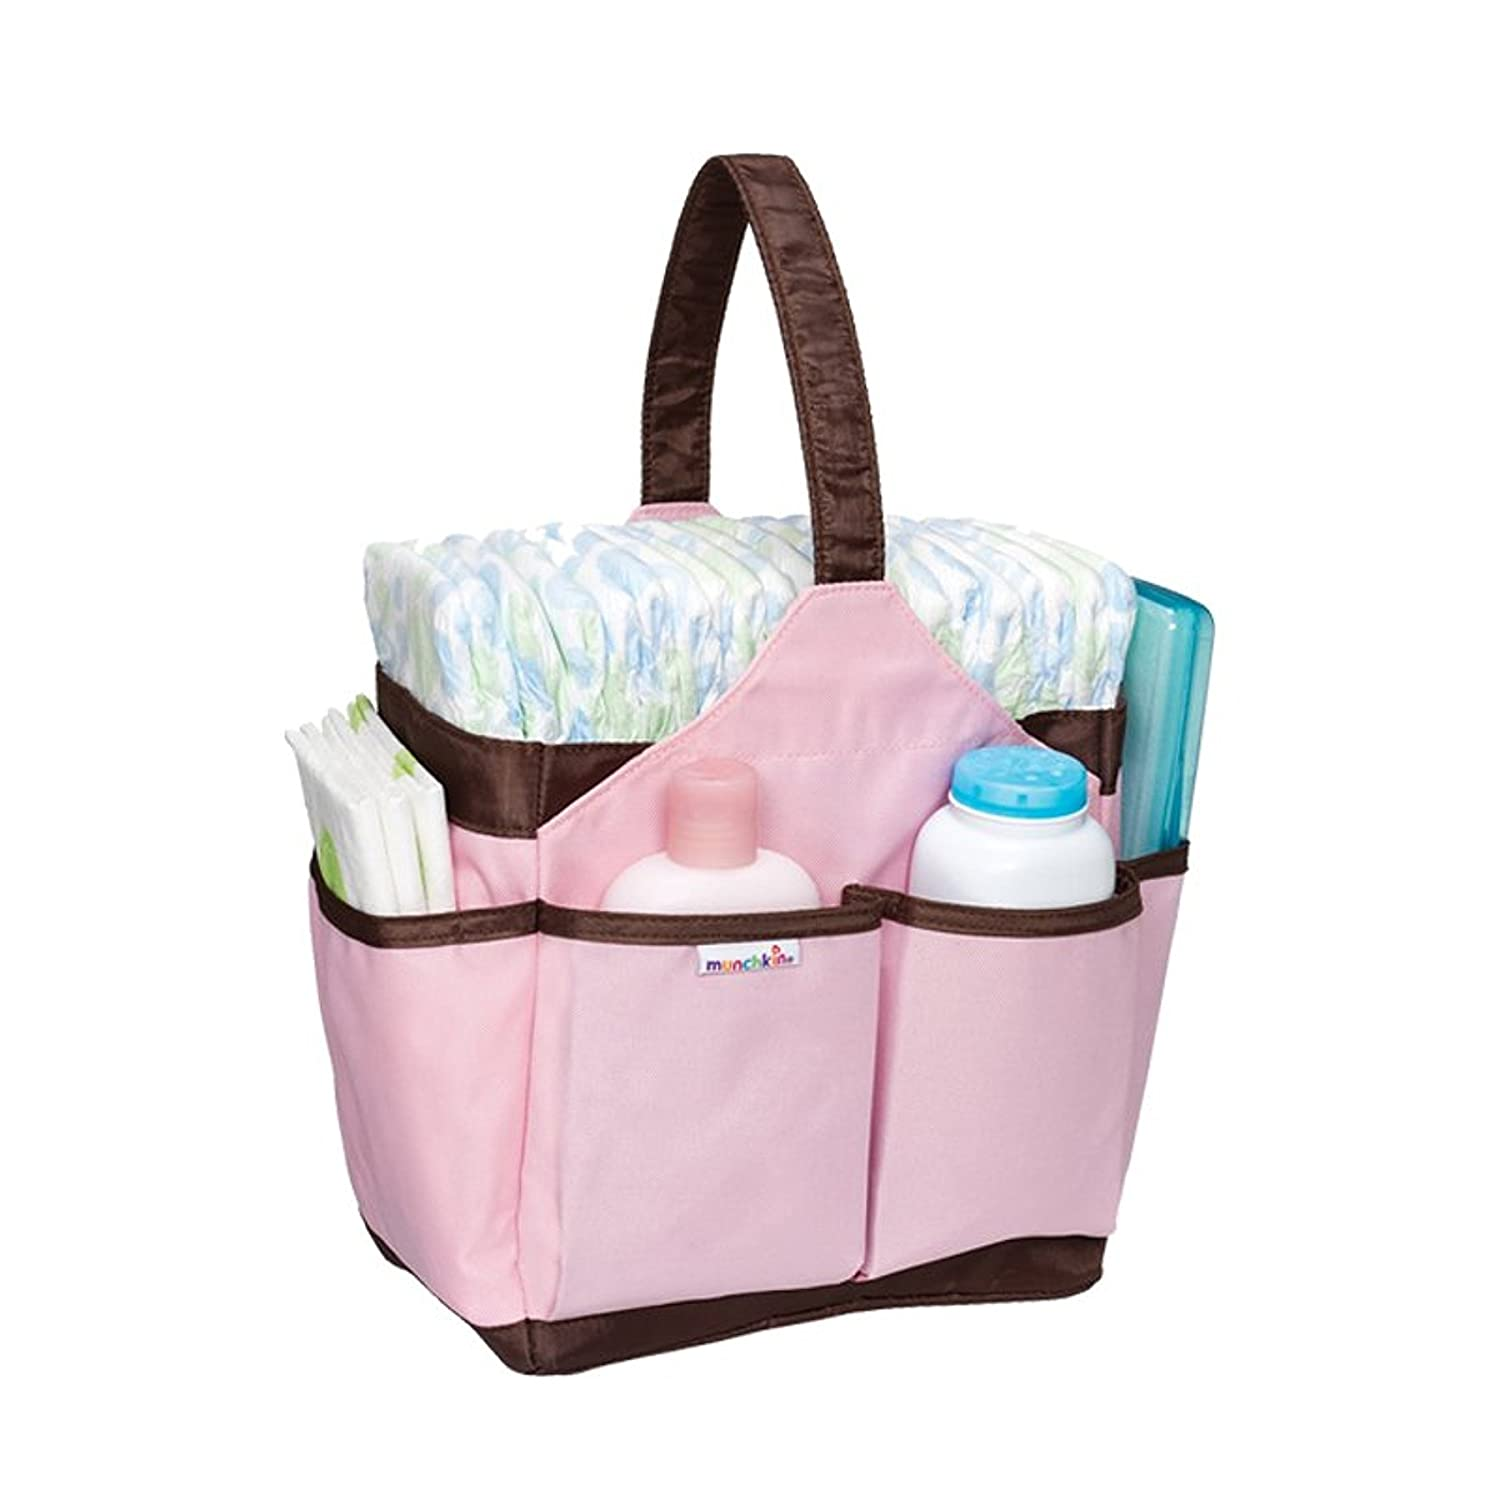 Munchkin Portable Diaper Caddy, Pink